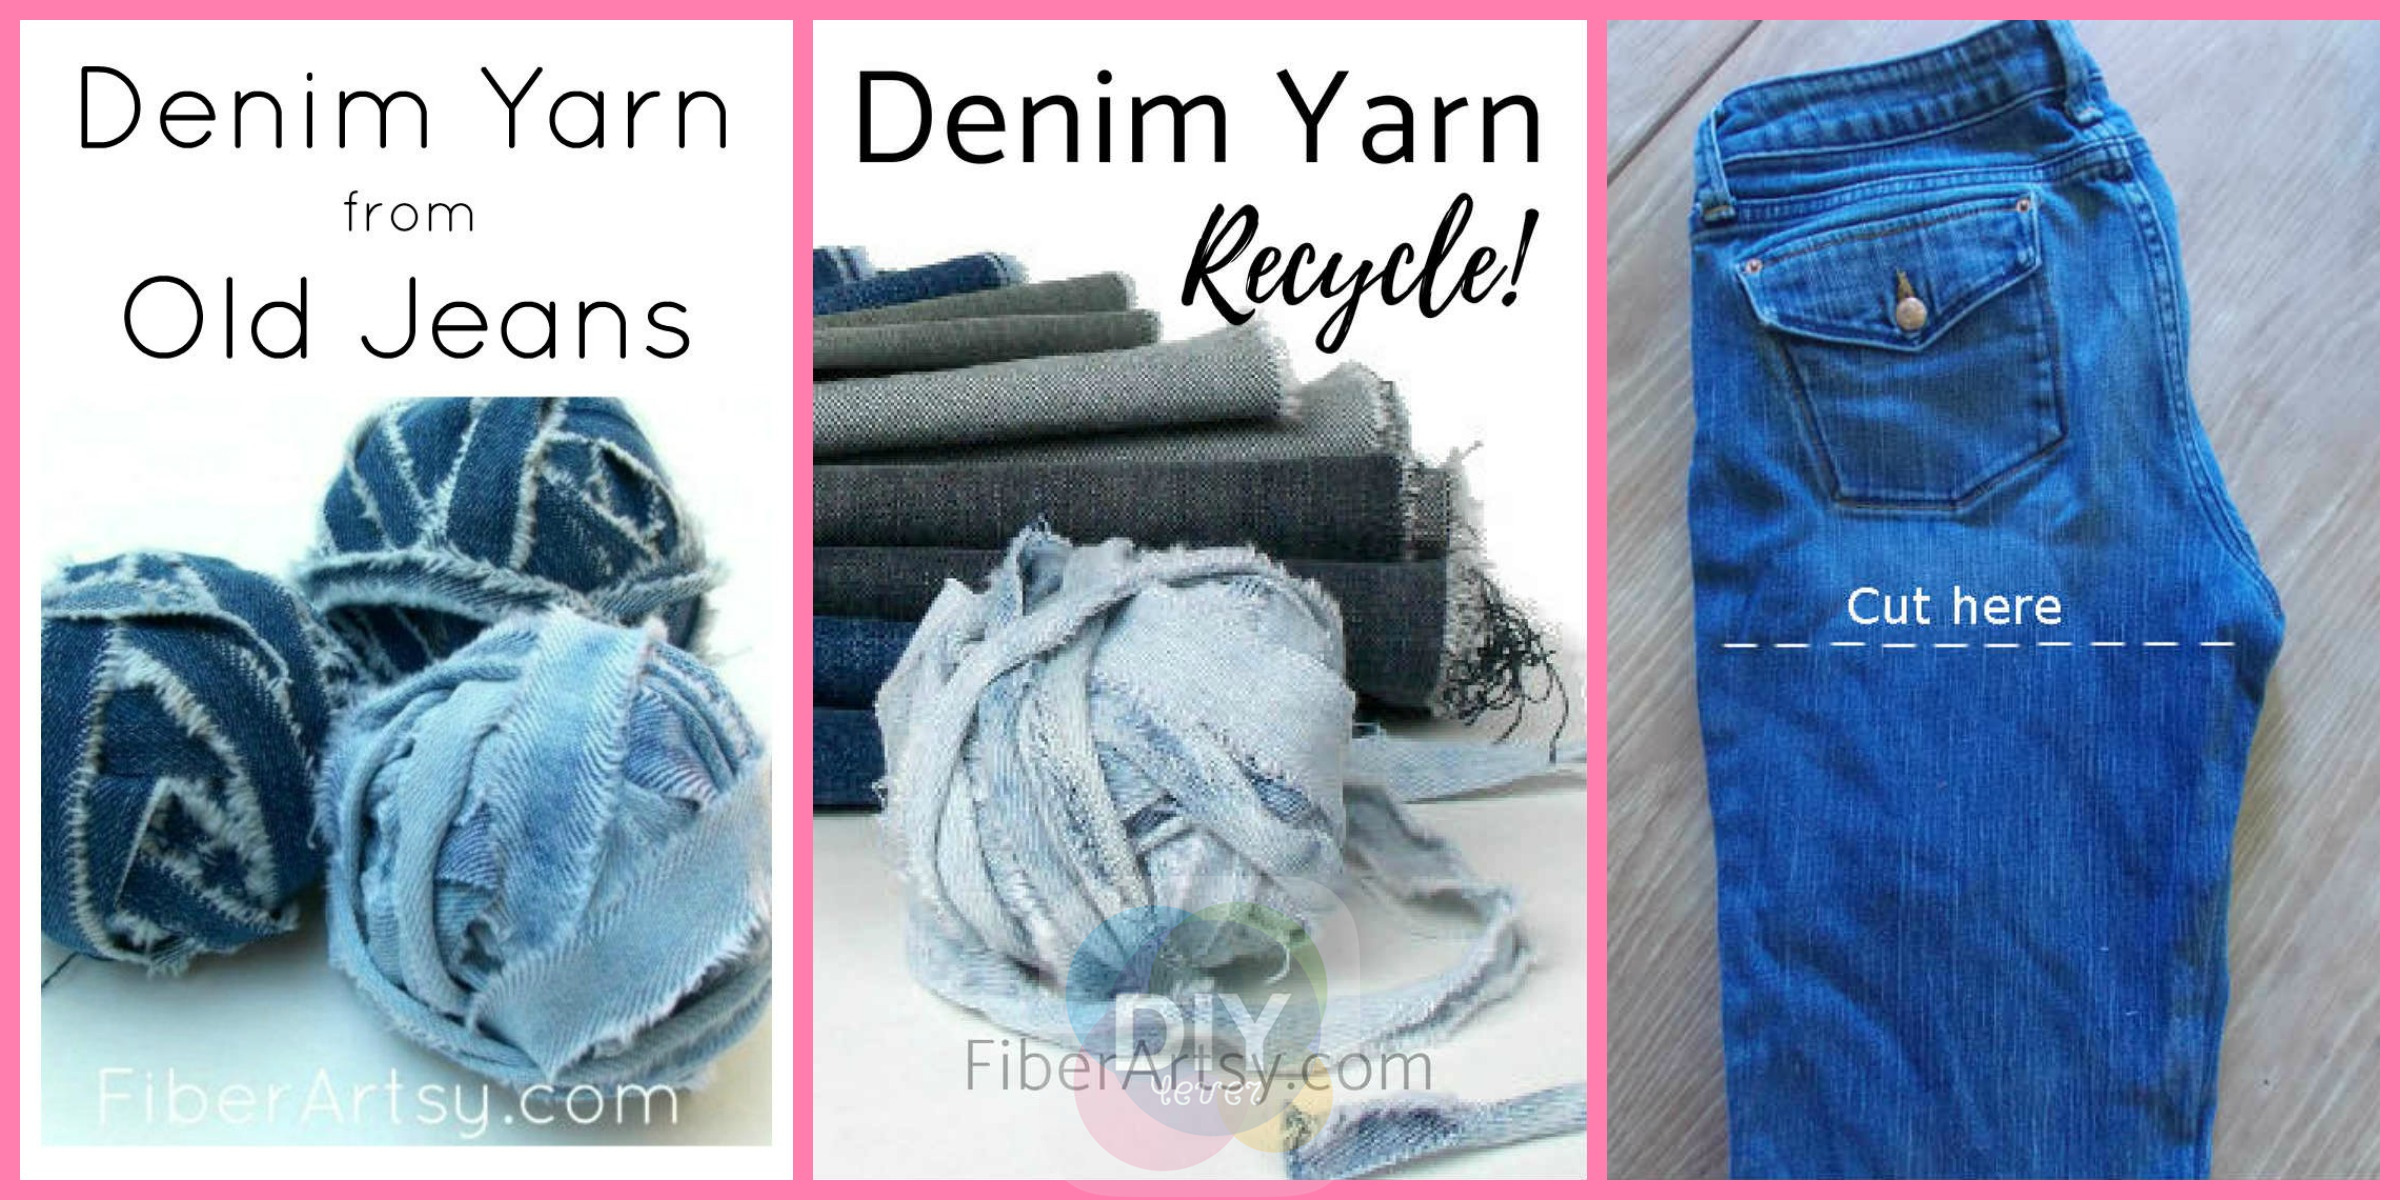 How to DIY Denim Yarn from Old Jeans